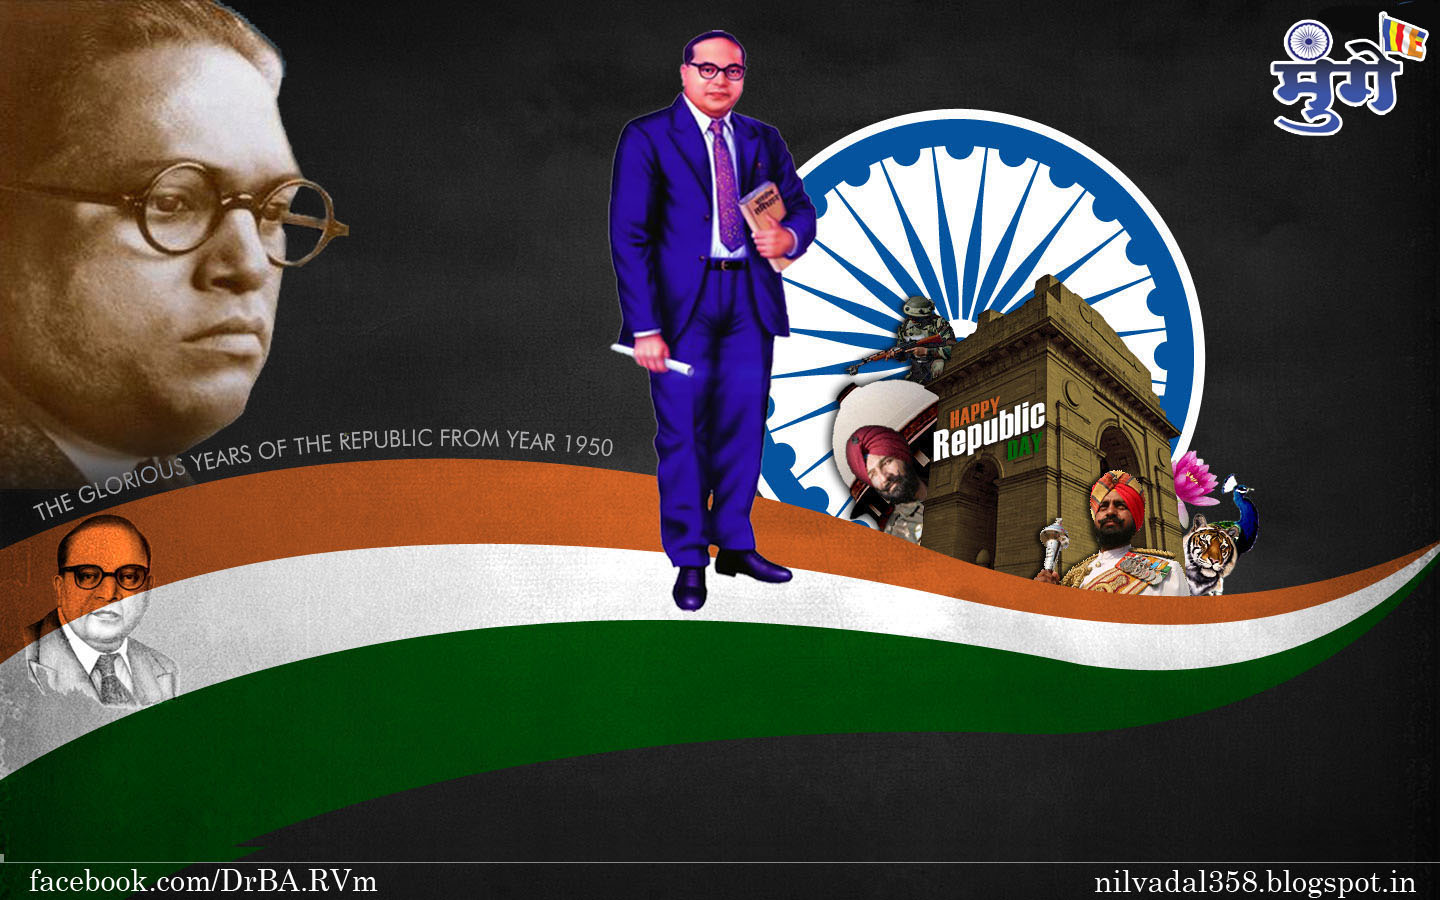 http://1.bp.blogspot.com/-b8Jj2coApm4/UPvJXKIOd6I/AAAAAAAAEOI/_OQ-VMsfu1M/s1600/26-january-BR+AMBEDKAR+HD+WALLPAPER-republic+day+india.jpg